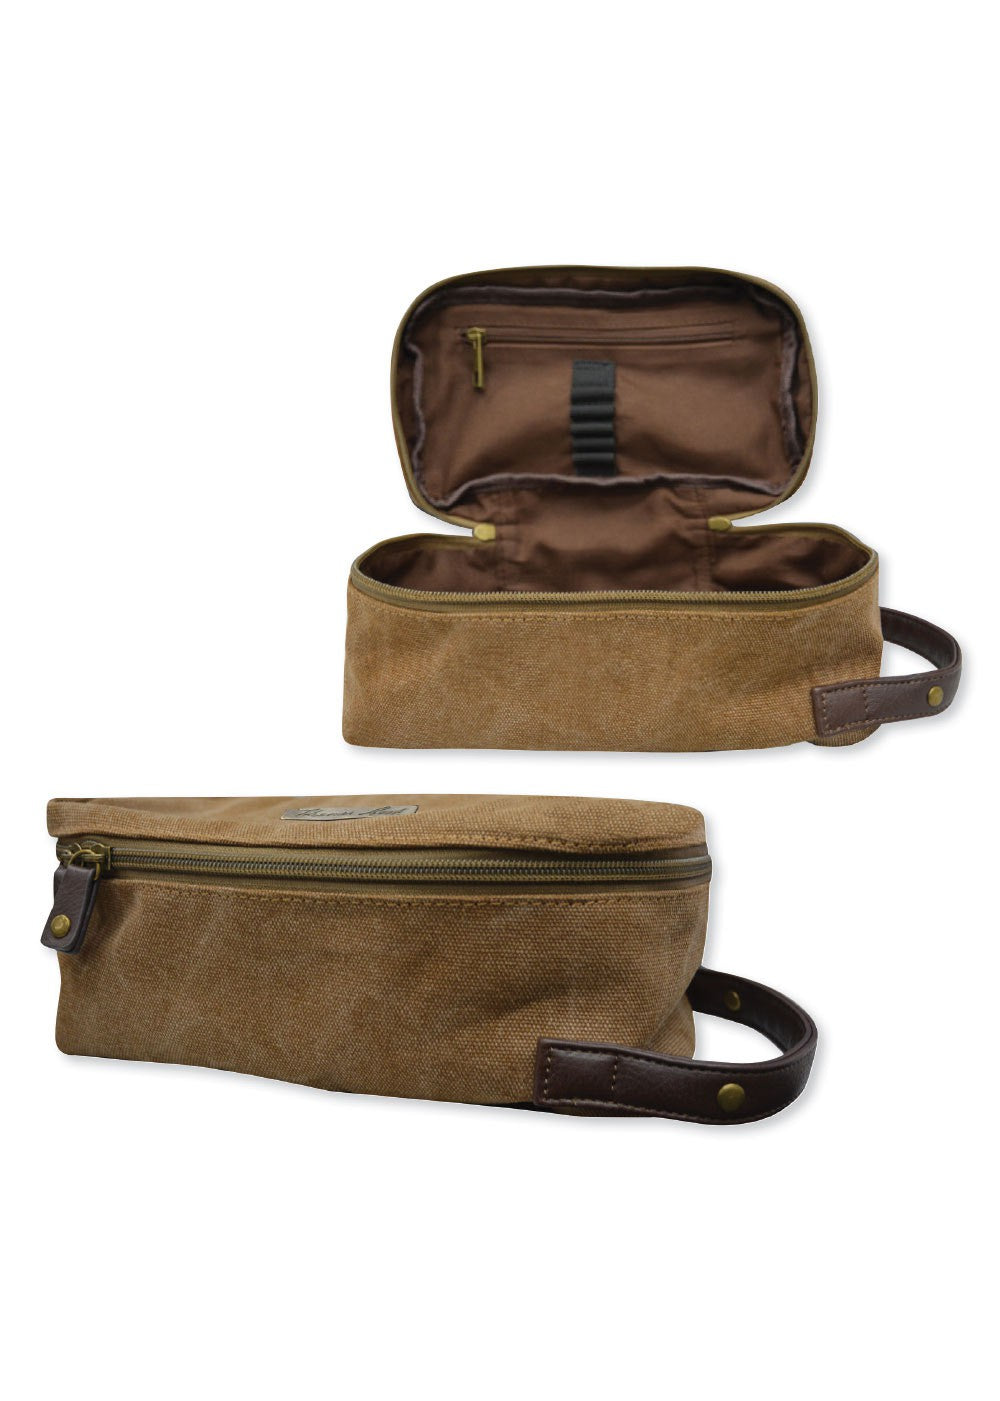 Wash Bag By Thomas Cook Features: Heavy duty canvas, double zip closure, internal zip pocket & open pockets elasticated utility holders TC metal badgeFabric: 70% Cotton 30% Polyester Vintage Wash 16ozLining: TC Poly 23x10x13cm TCP1925097, Available at My Harley and Rose